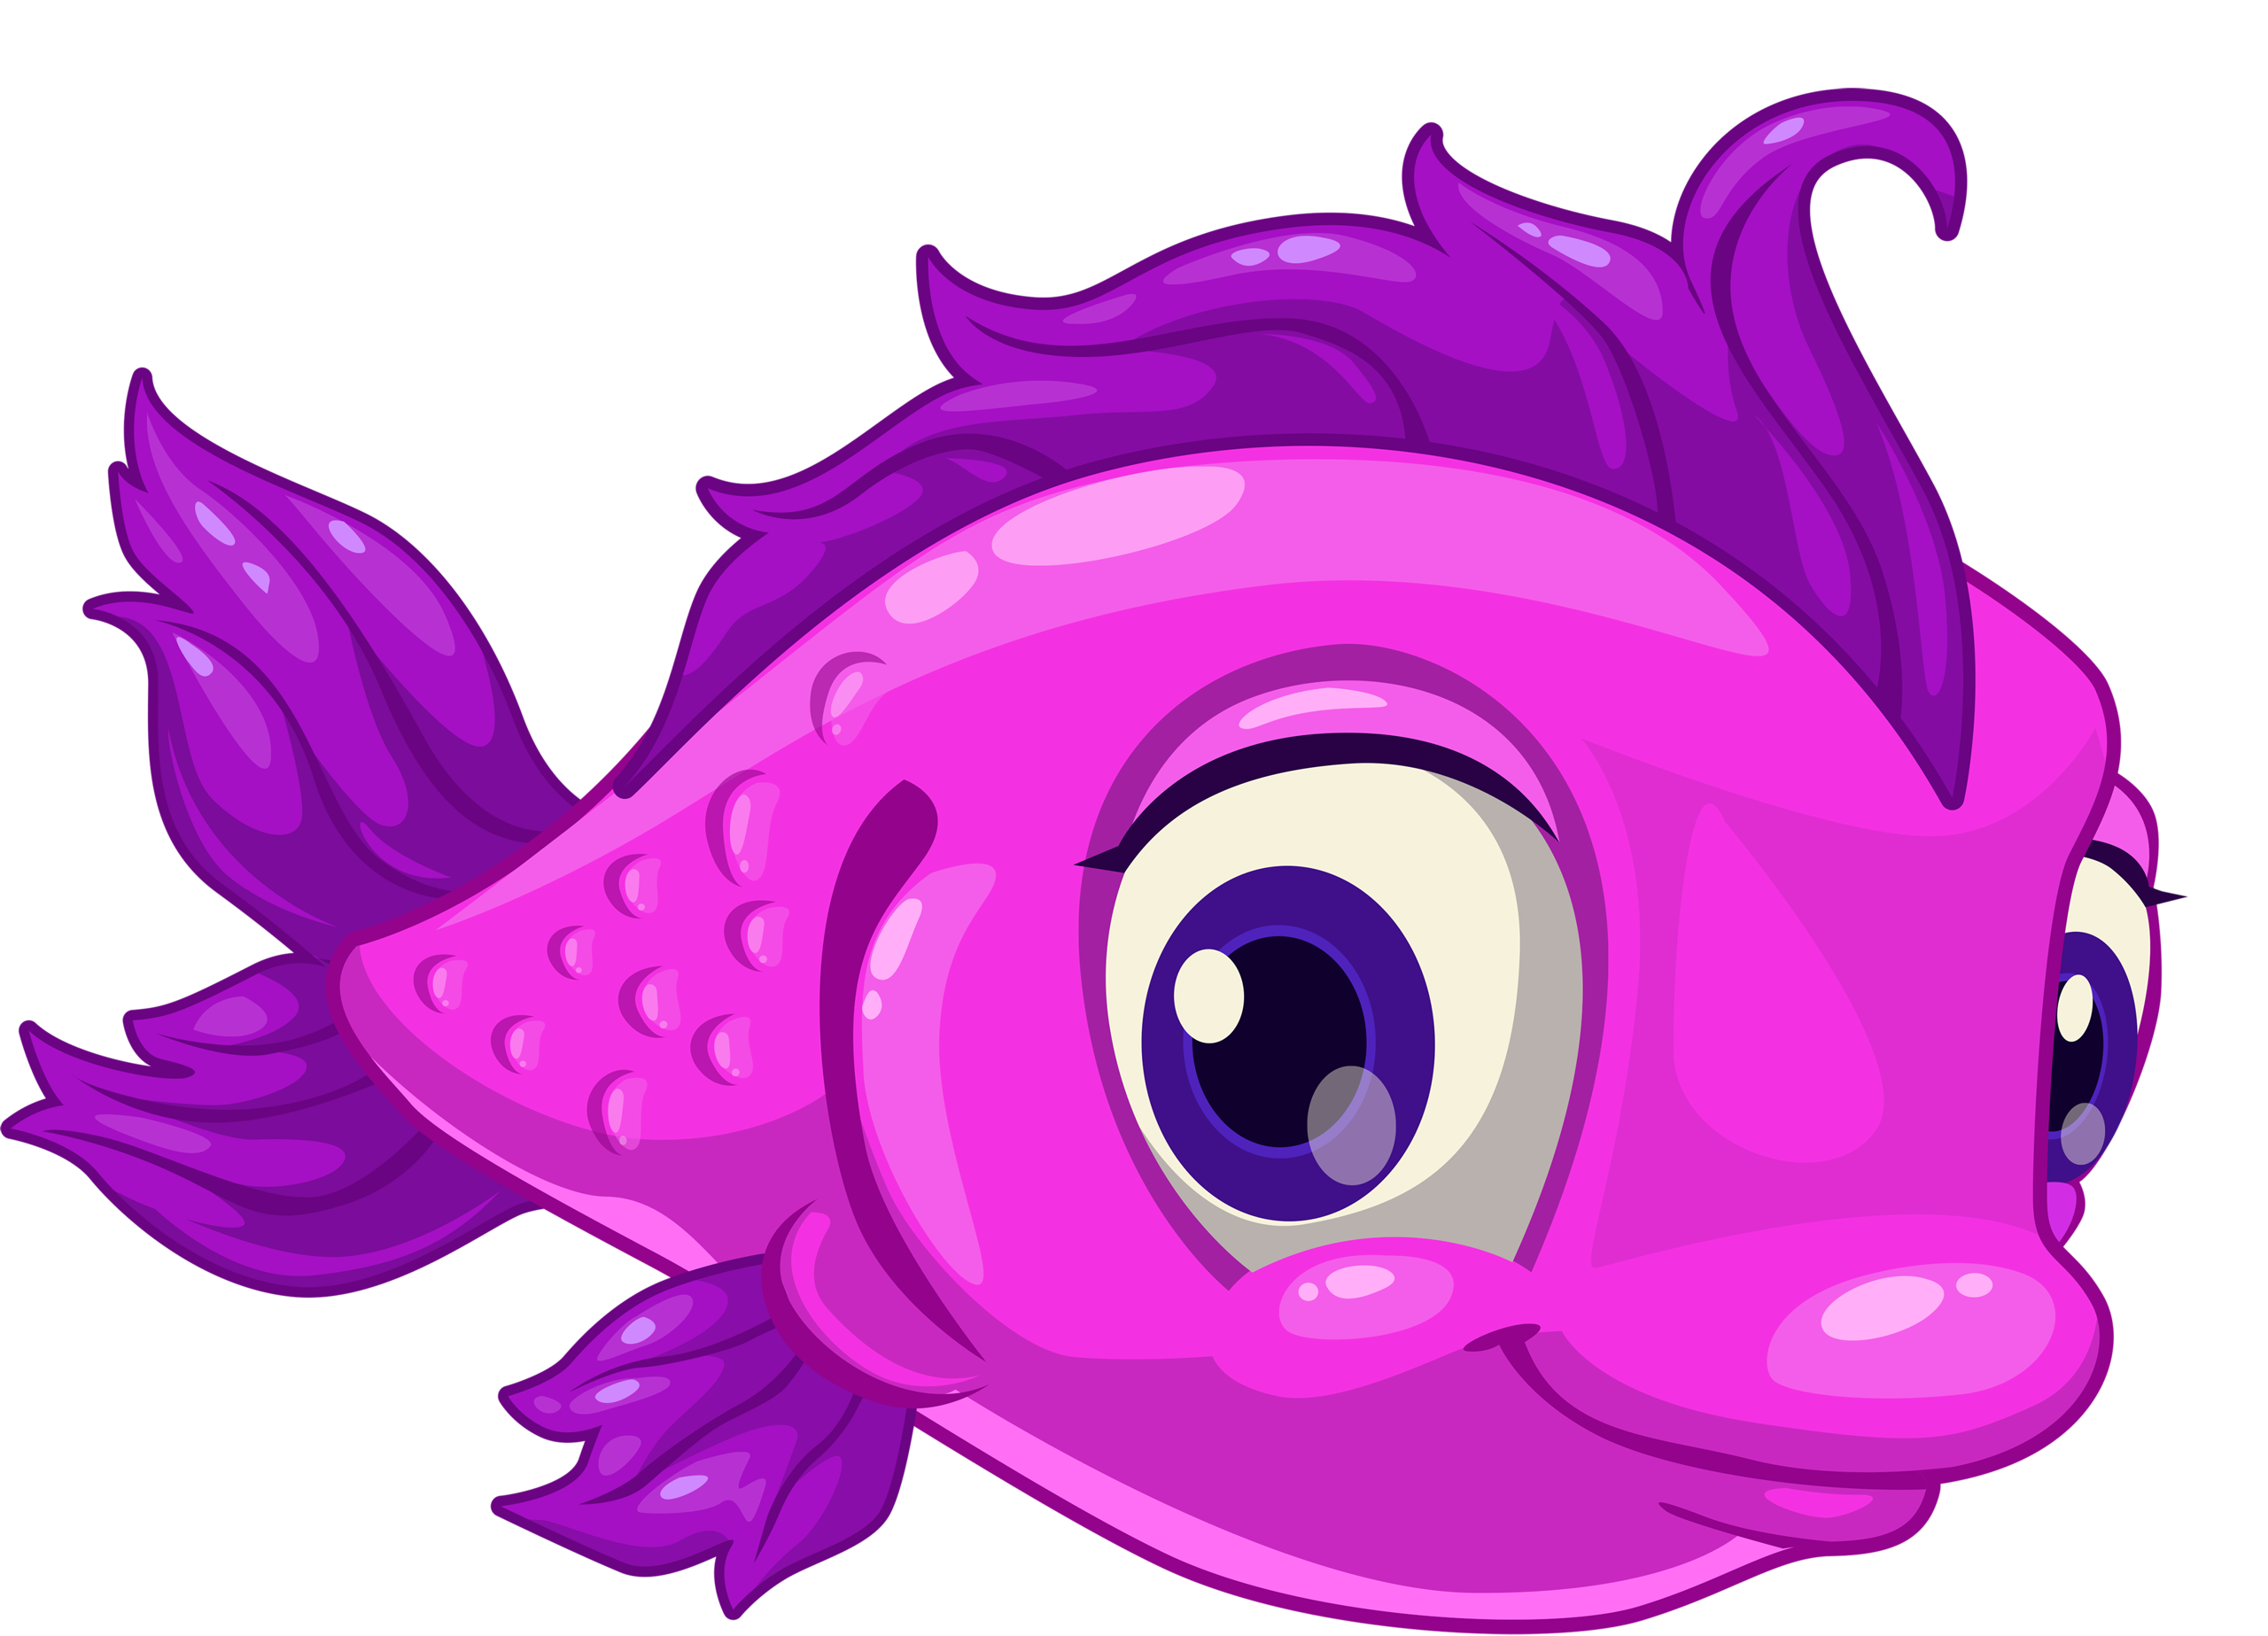 Underwater clipart stone. Shutterstock png how cute